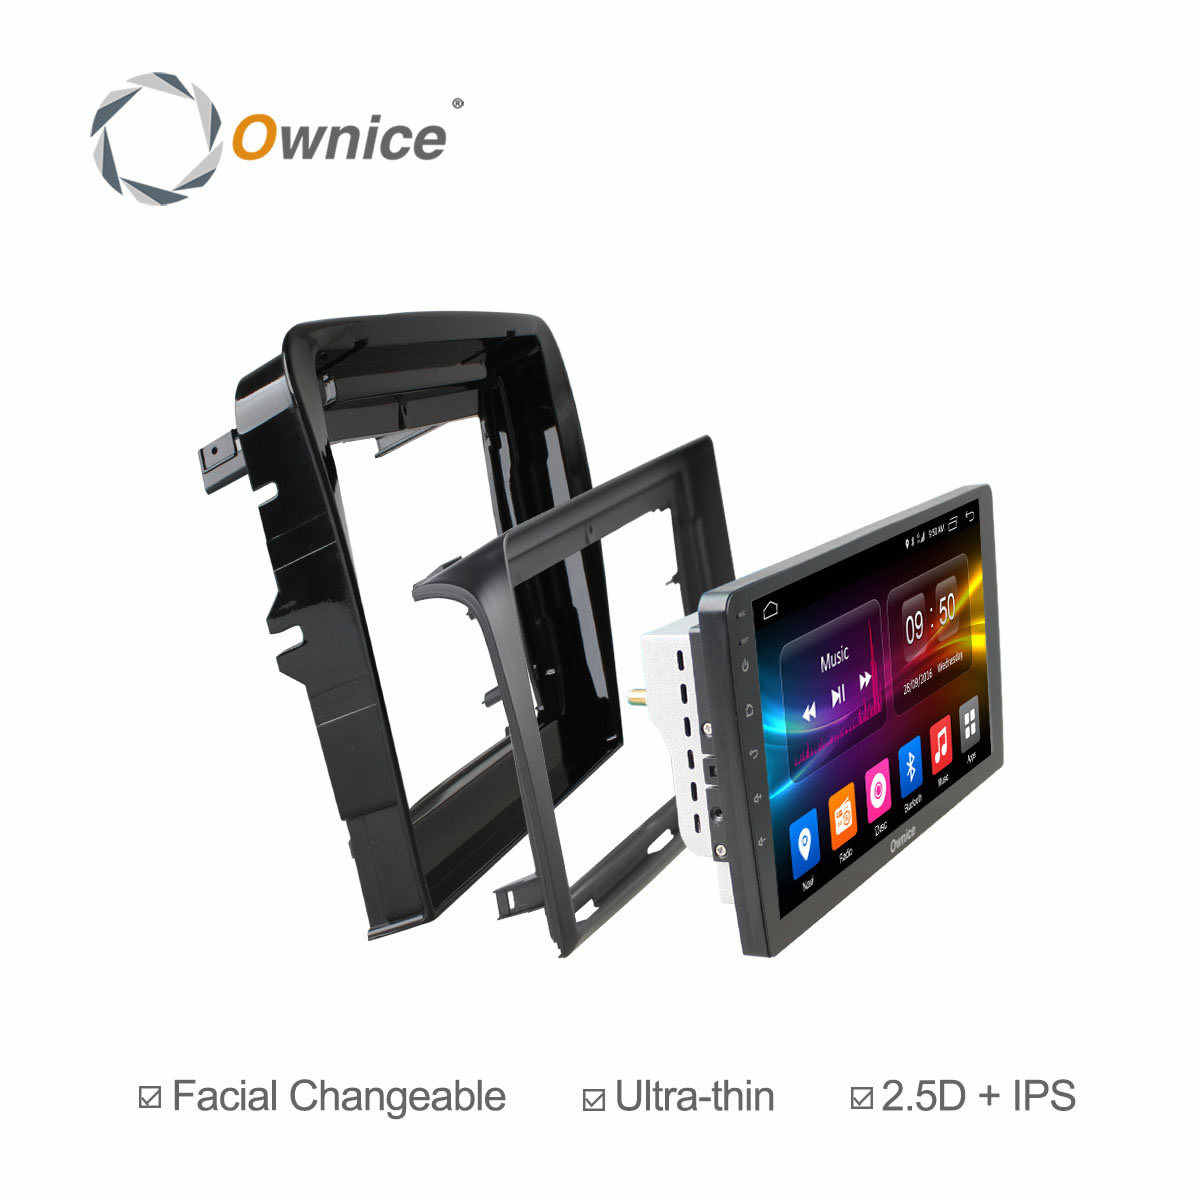 Ownice C500 + G10 android 8.1 Octa Core car dvd-speler voor Toyota Yaris 2018 MT/AT Auto Radio gps Audio 4G LTE Carplay 32G ROM